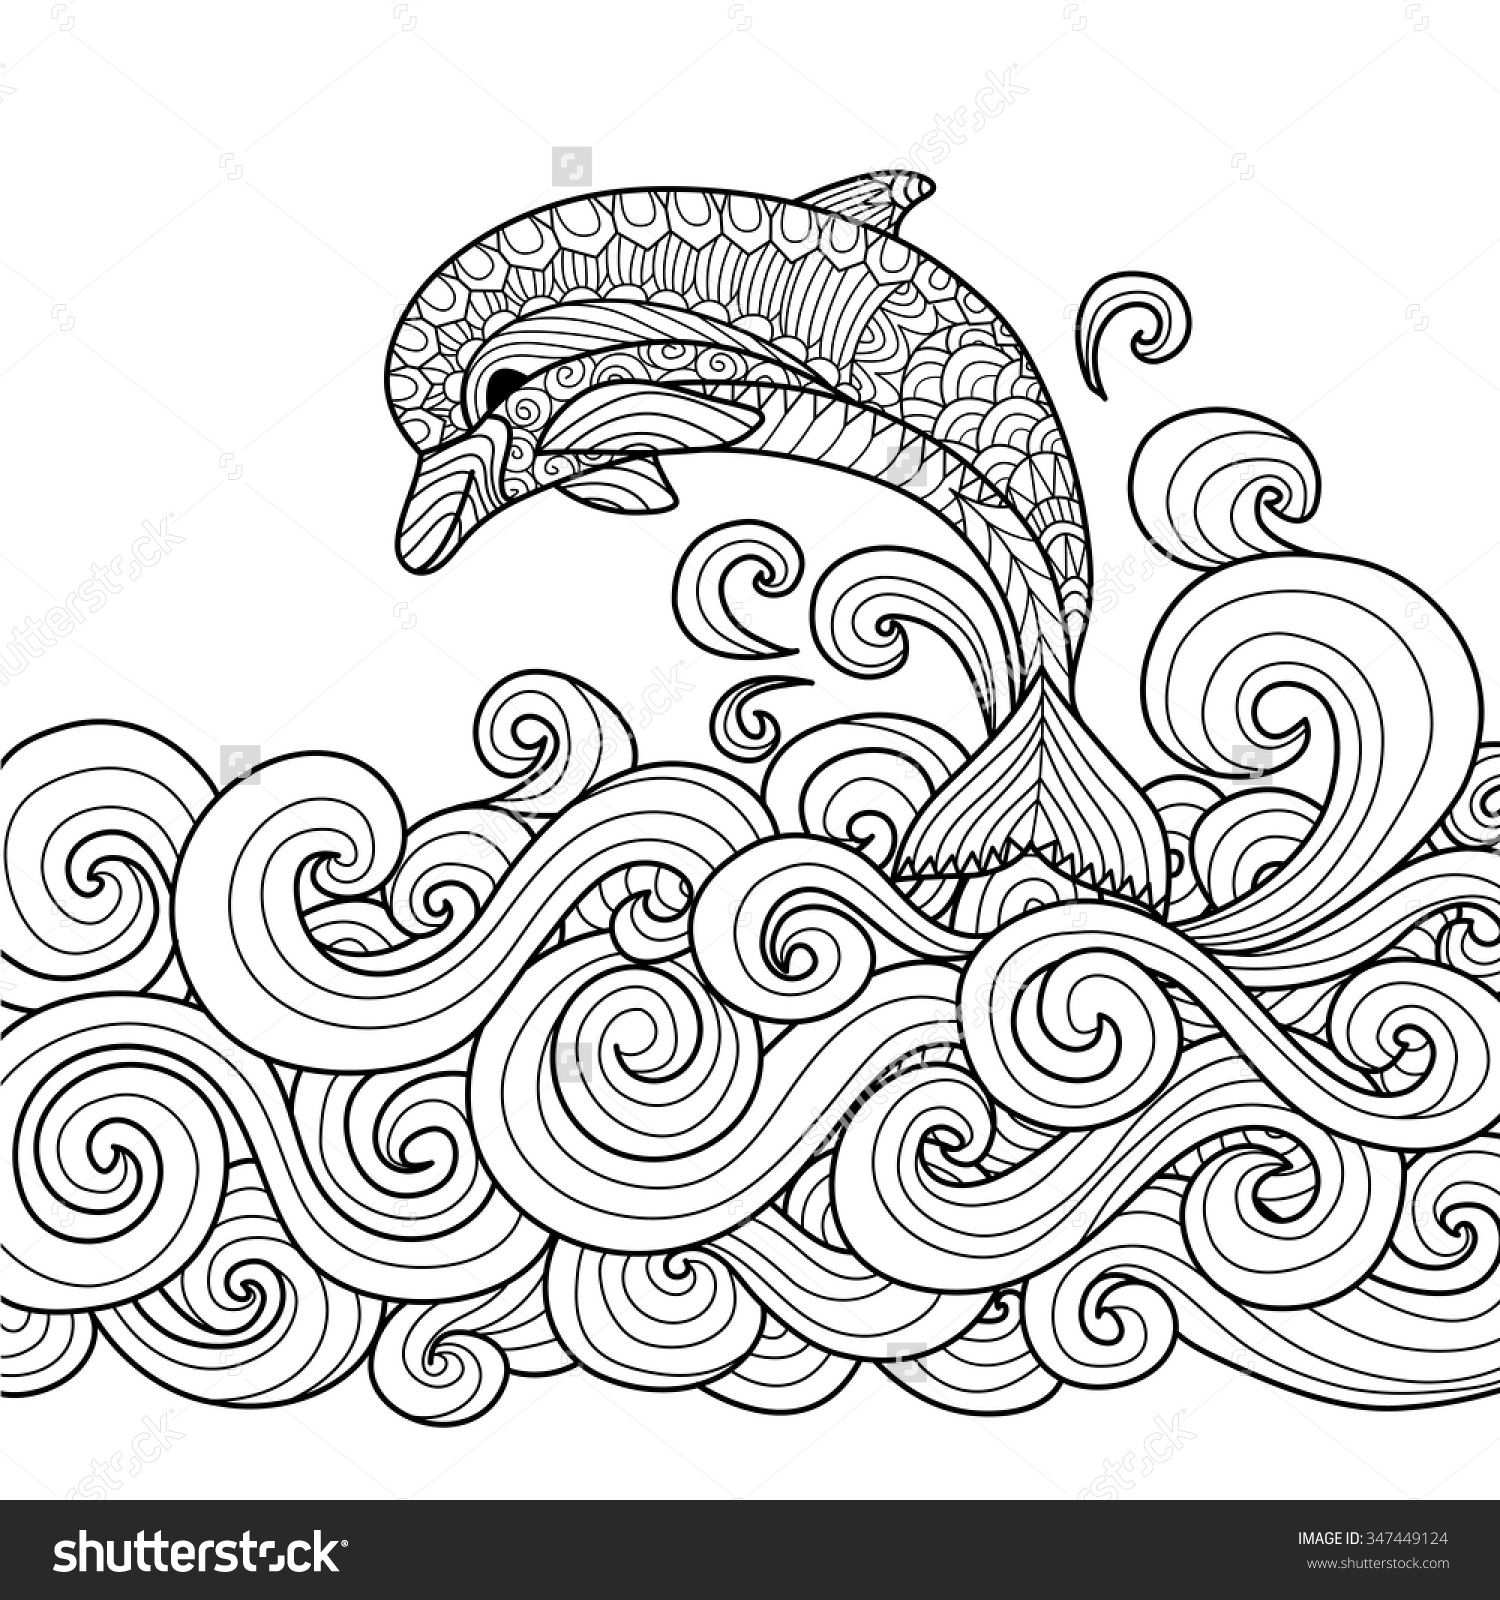 stock-vector-hand-drawn-zentangle-dolphin-with-scrolling ...